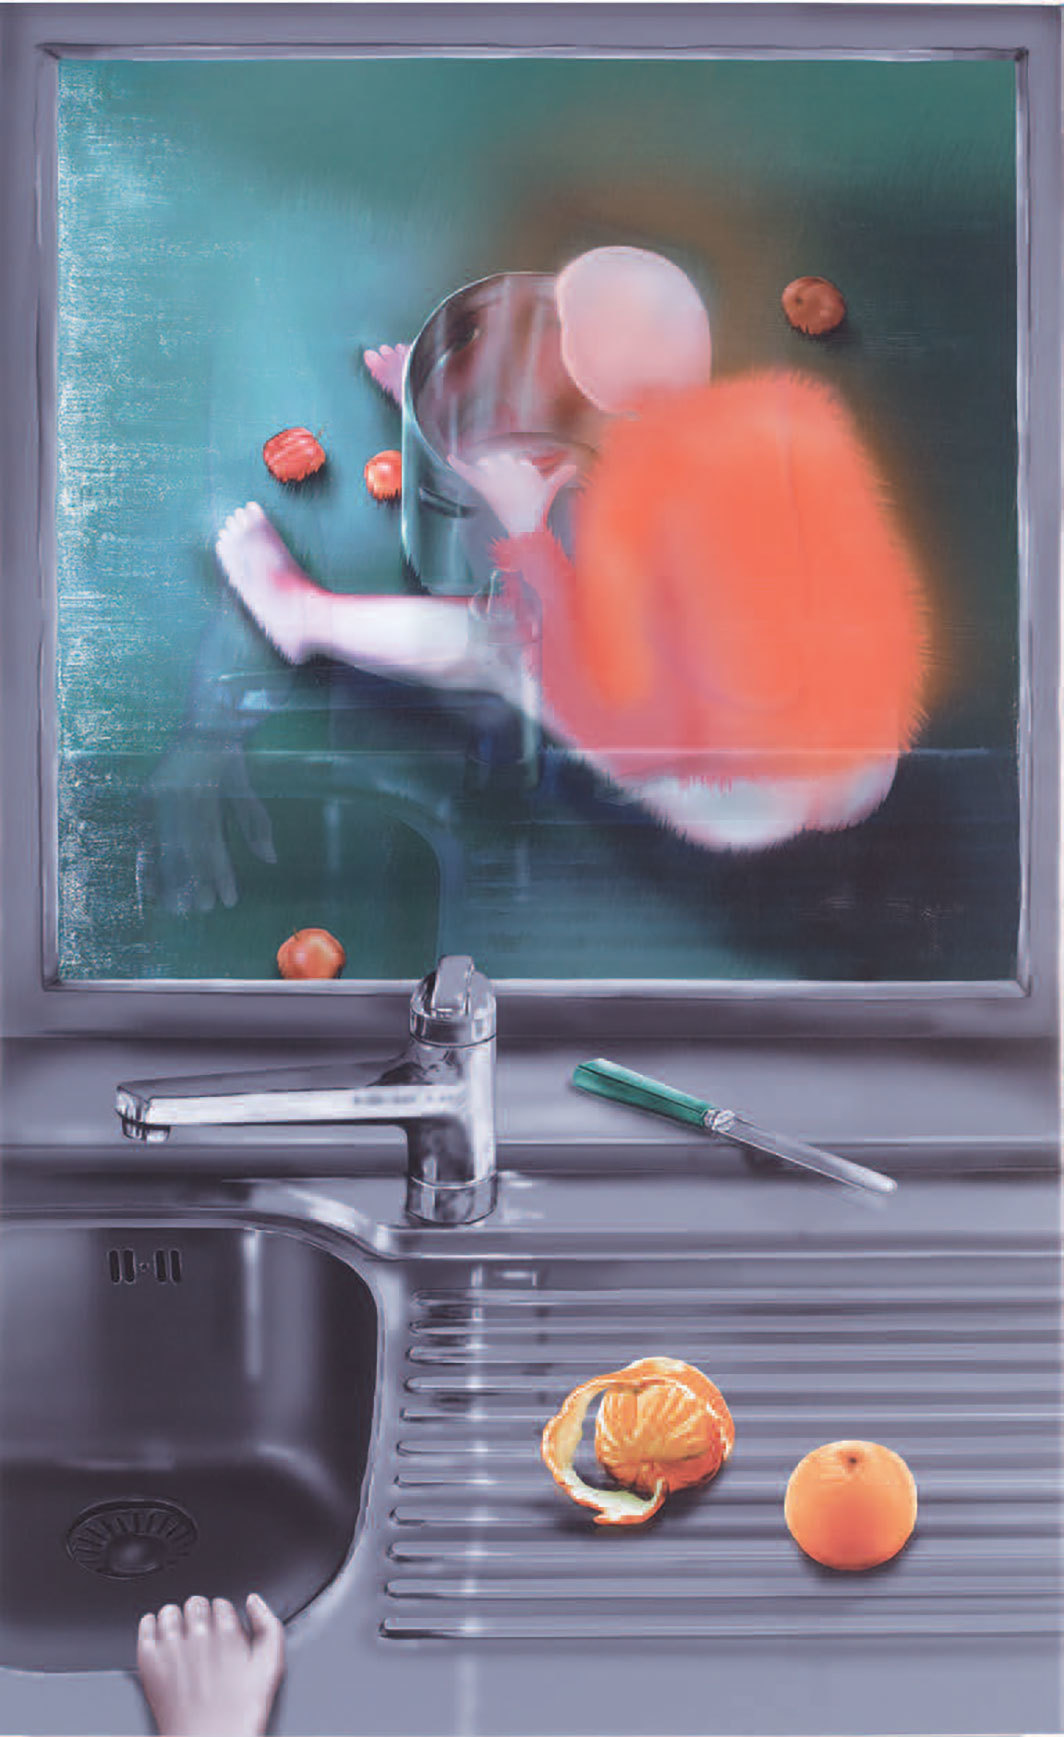 "Louisa Gagliardi, Apples and Oranges, 2020, ink and gel medium on PVC, 70 7⁄8 × 44 1⁄8""."